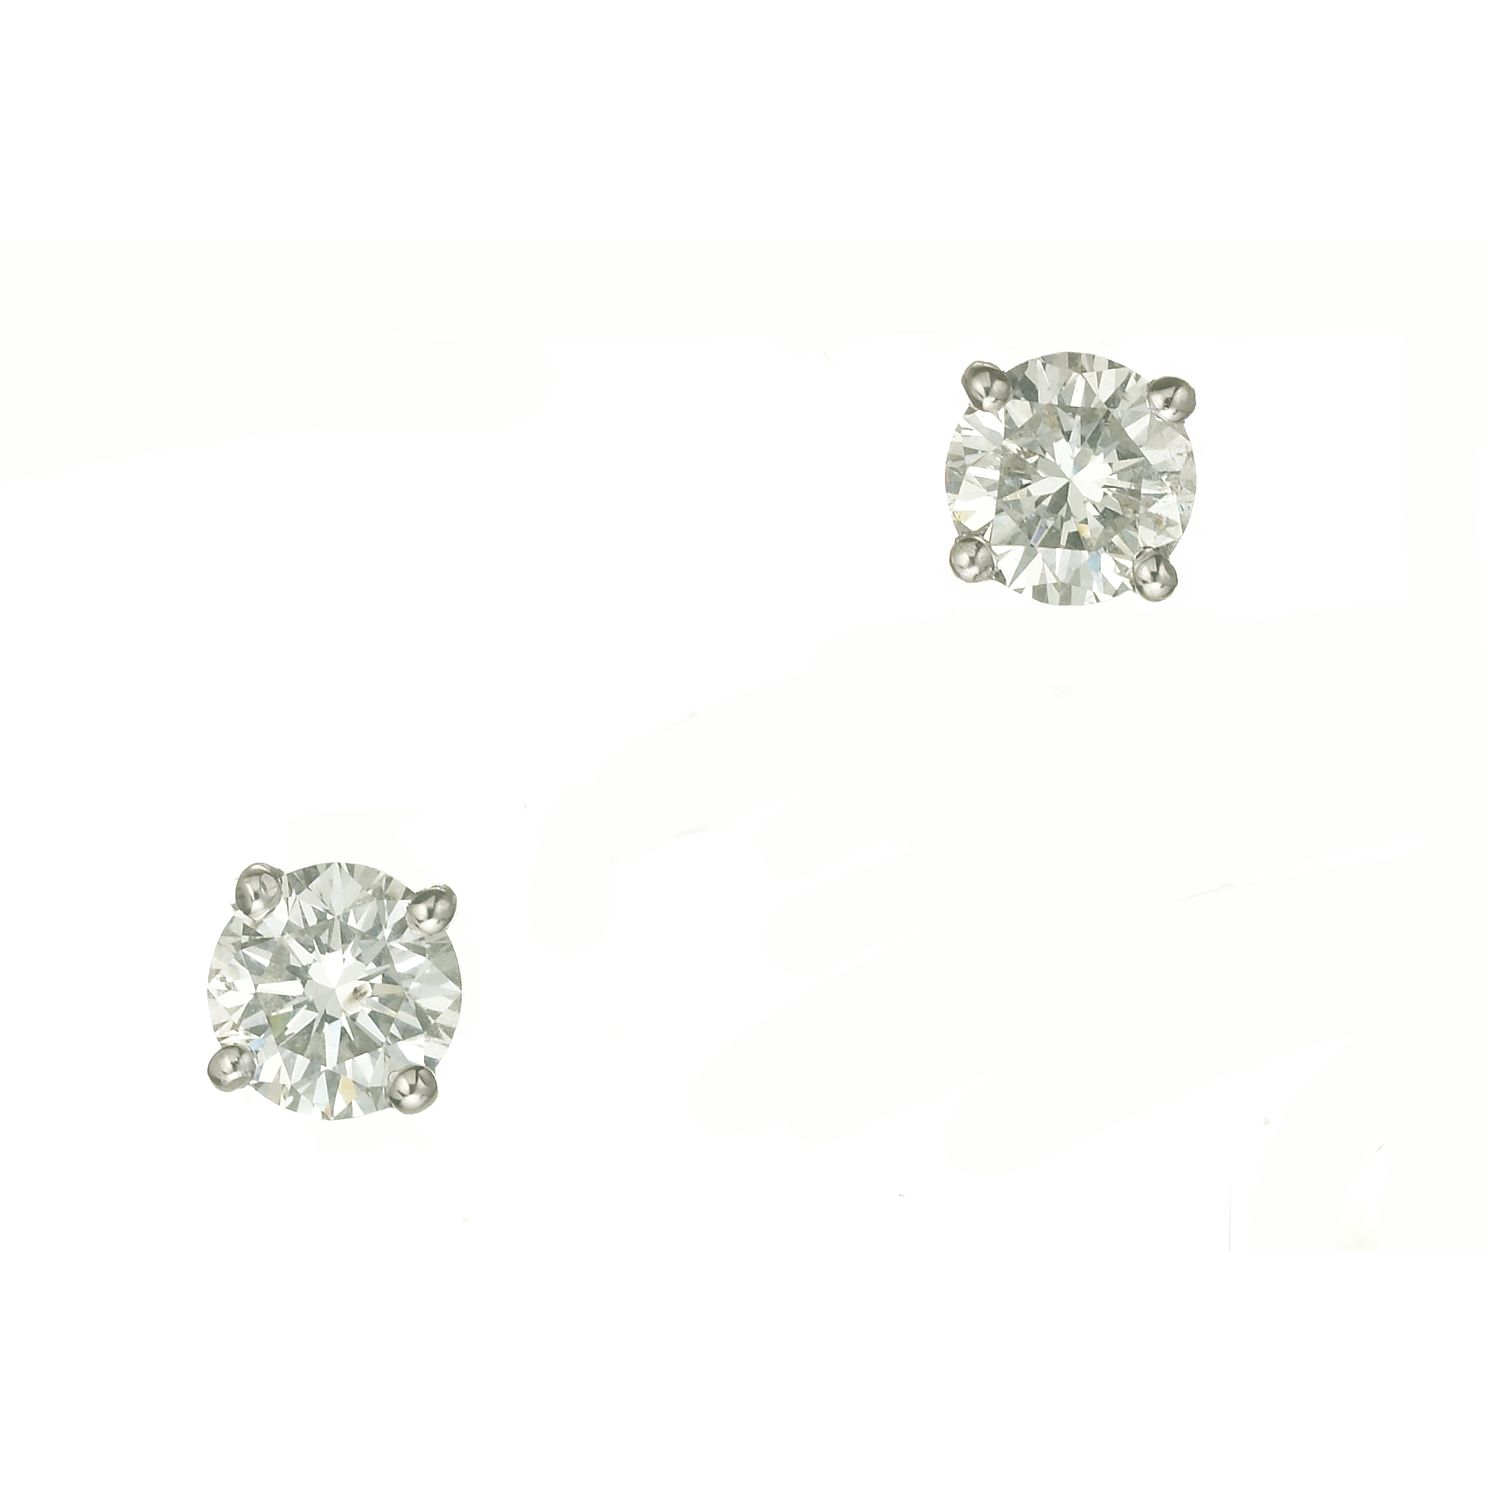 18ct White Gold One Carat Diamond Stud Earrings - Product number 6000924